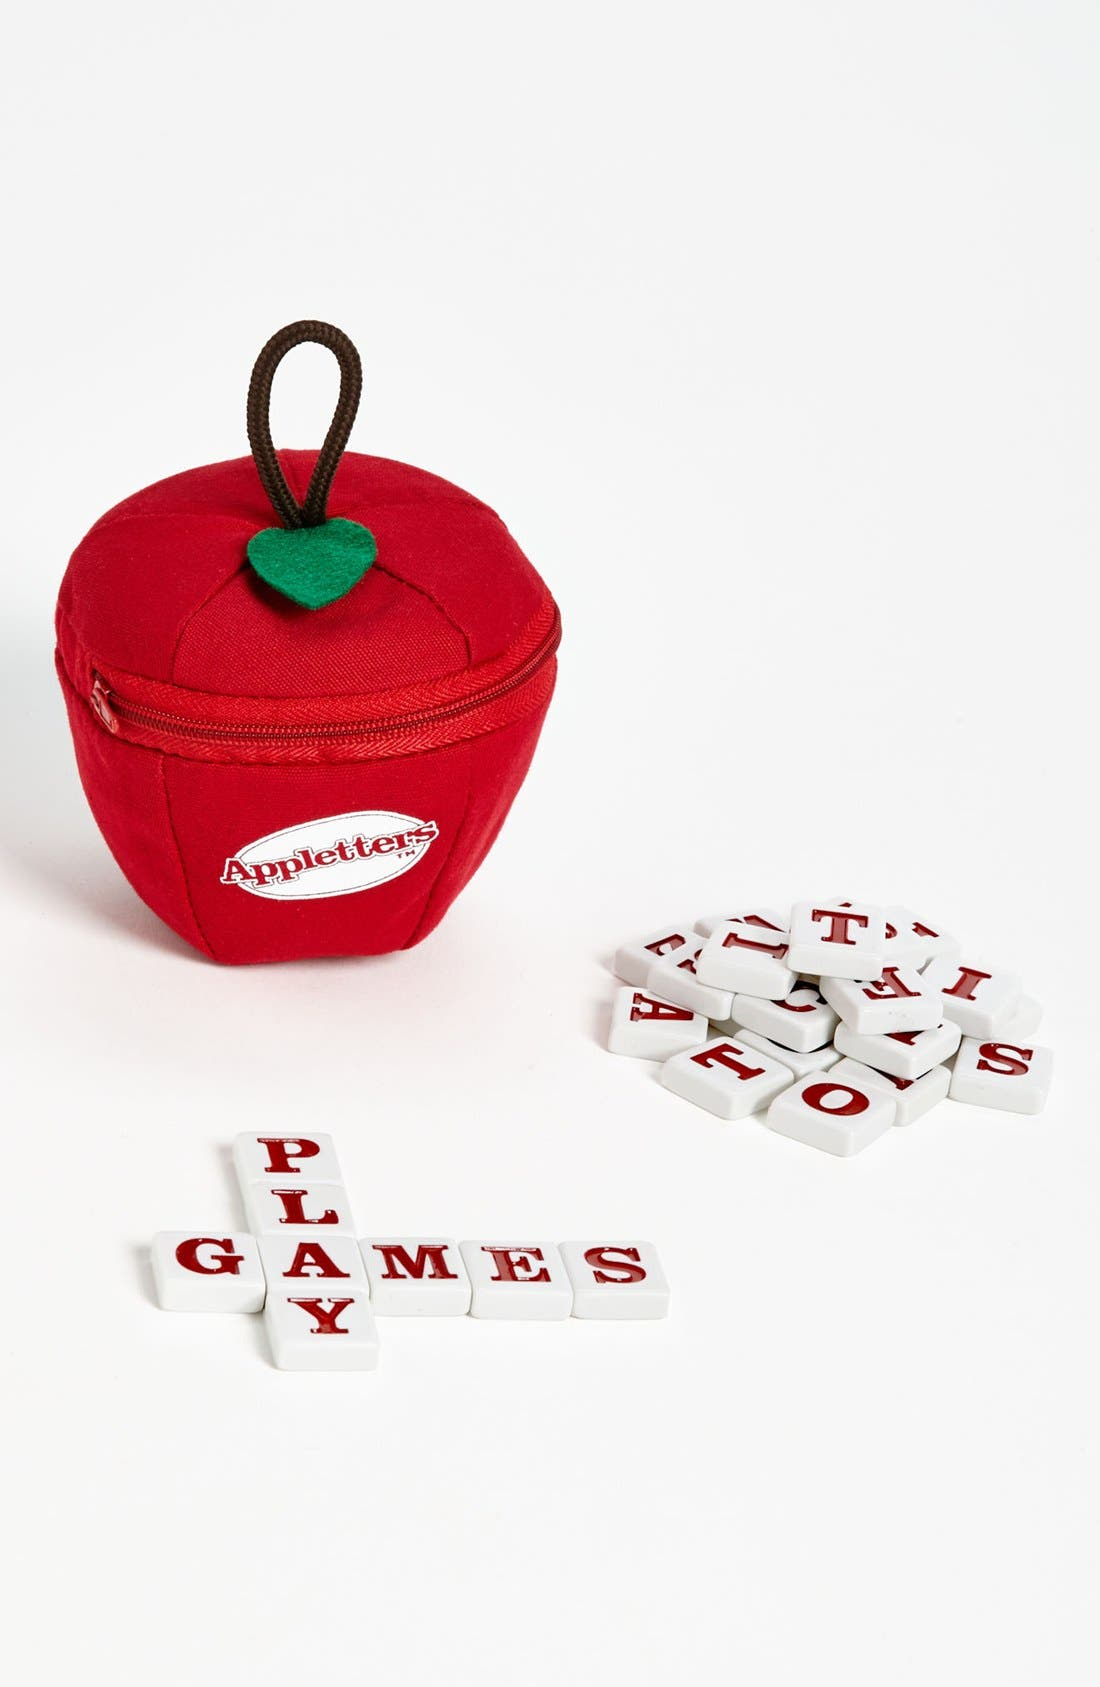 Main Image - Bananagrams 'Appletters' Game